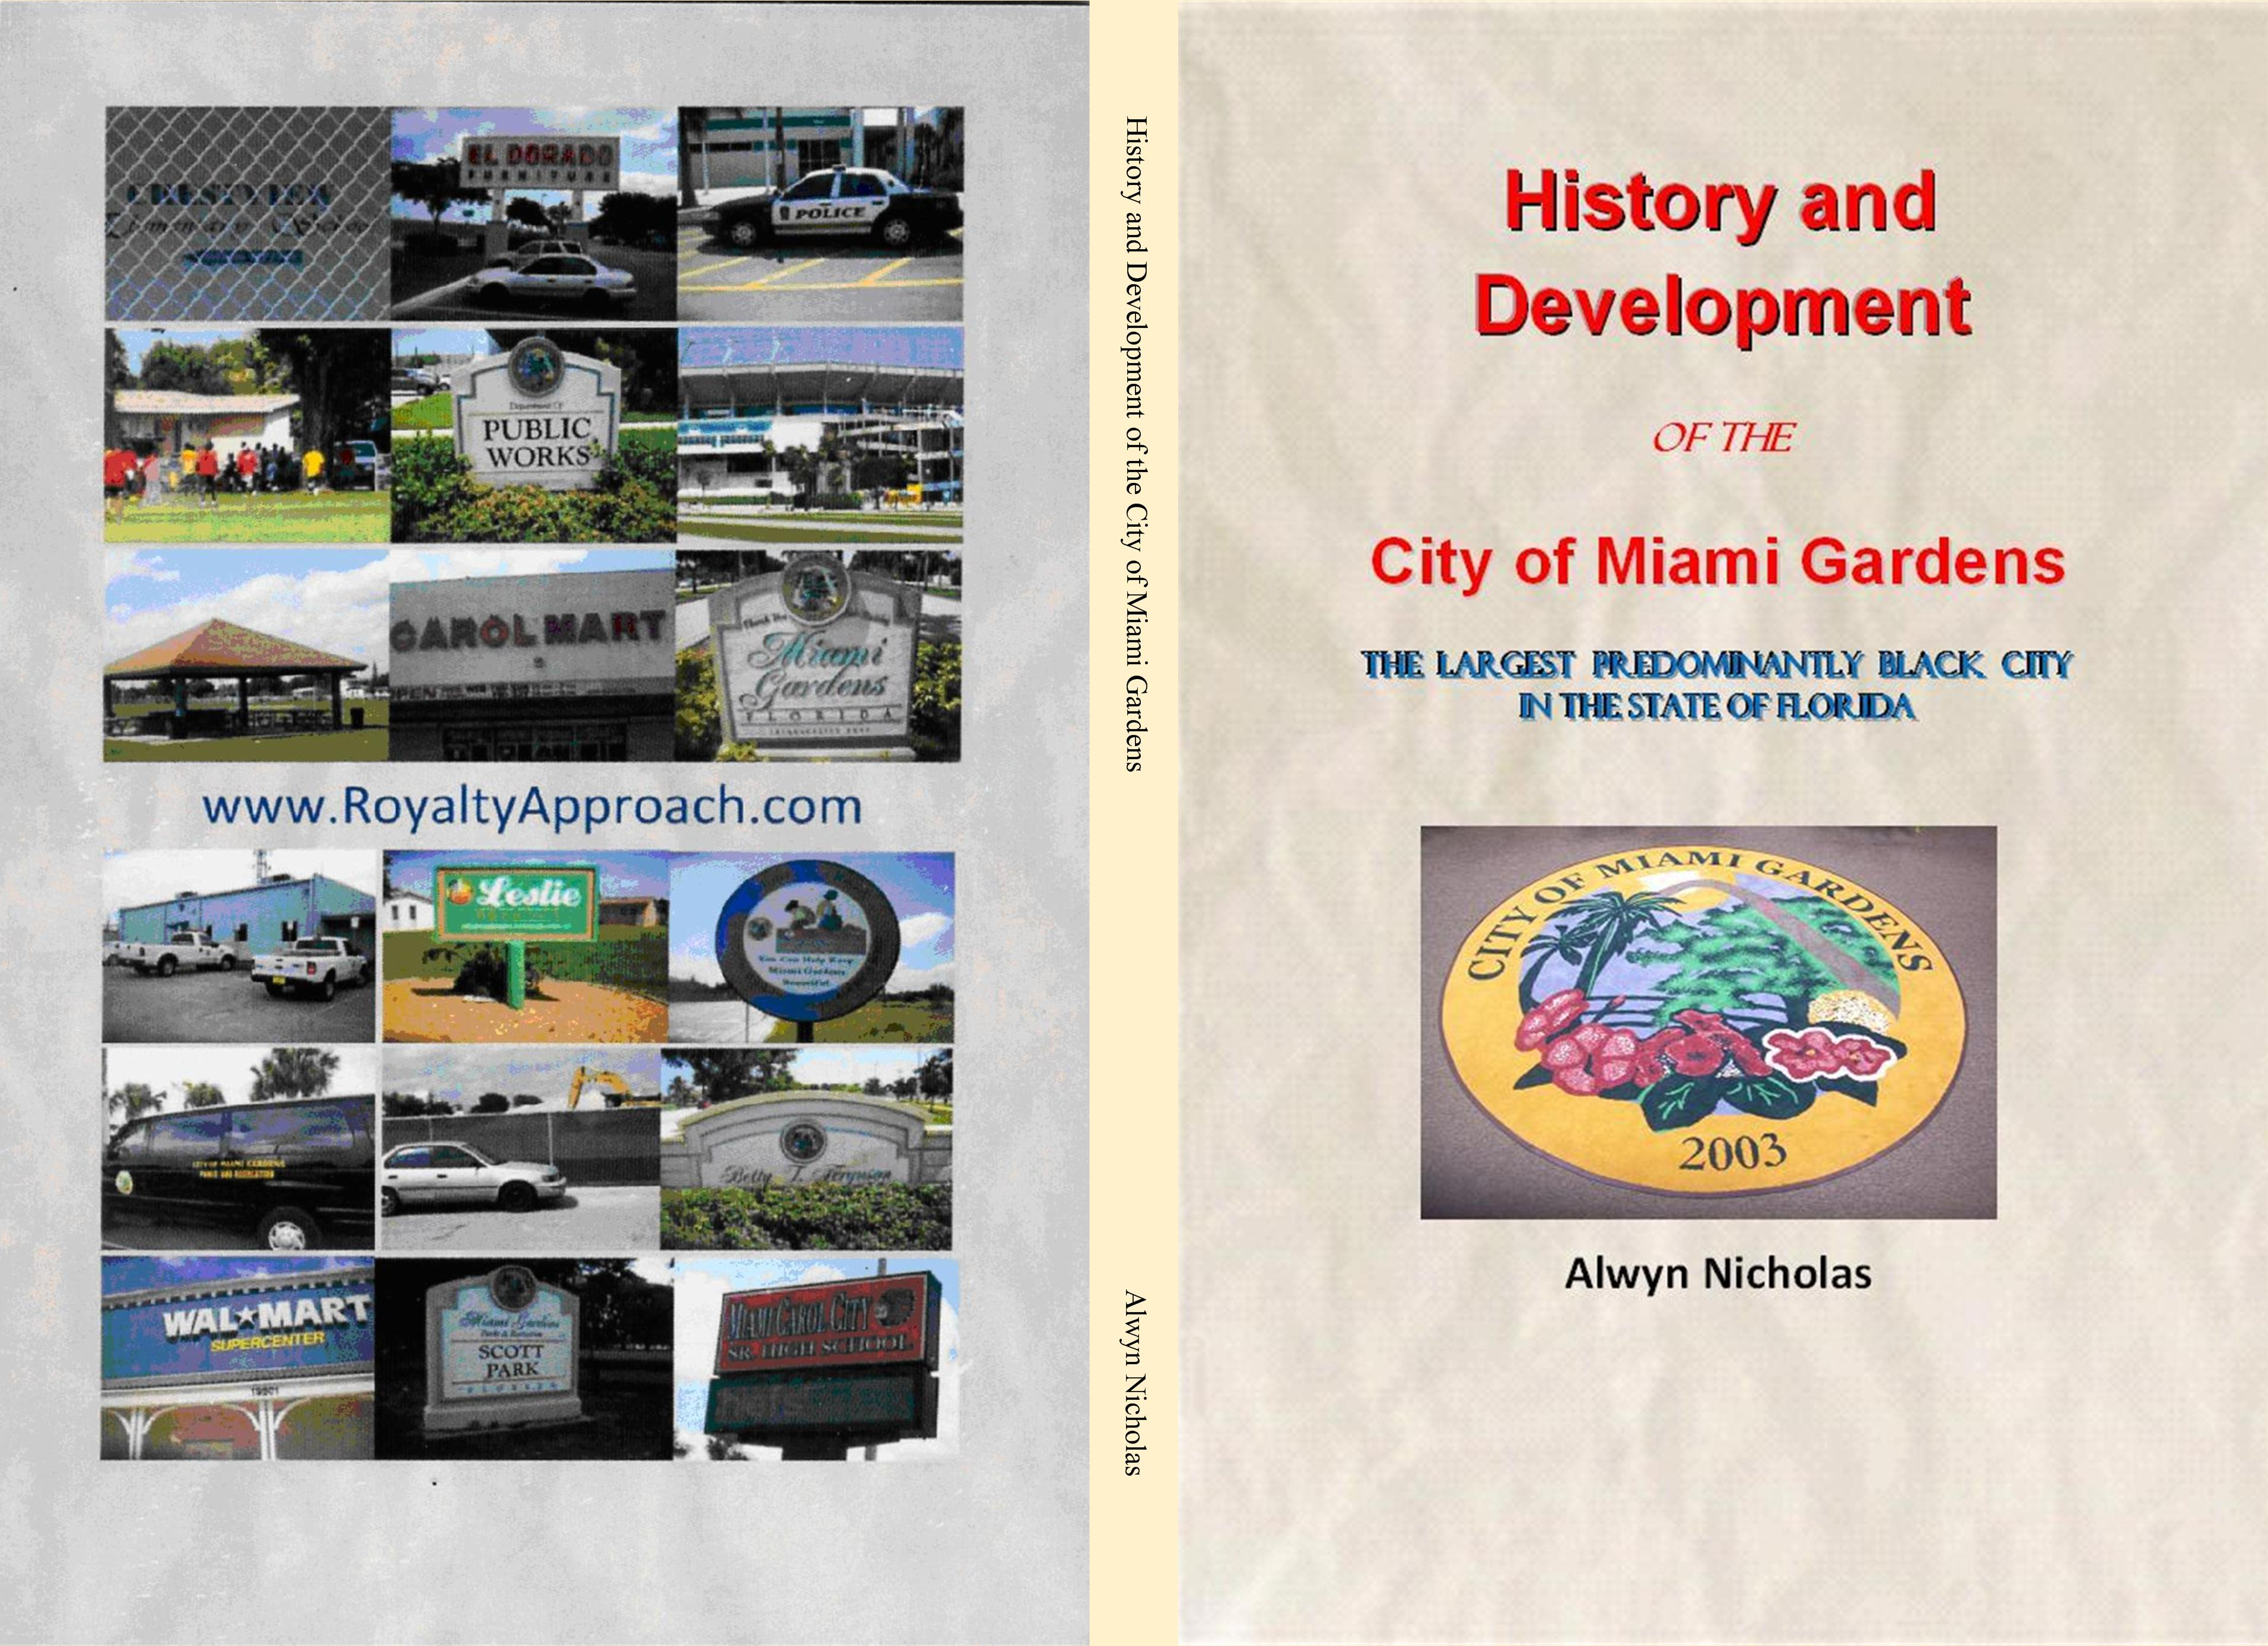 History and Development of the City of Miami Gardens cover image